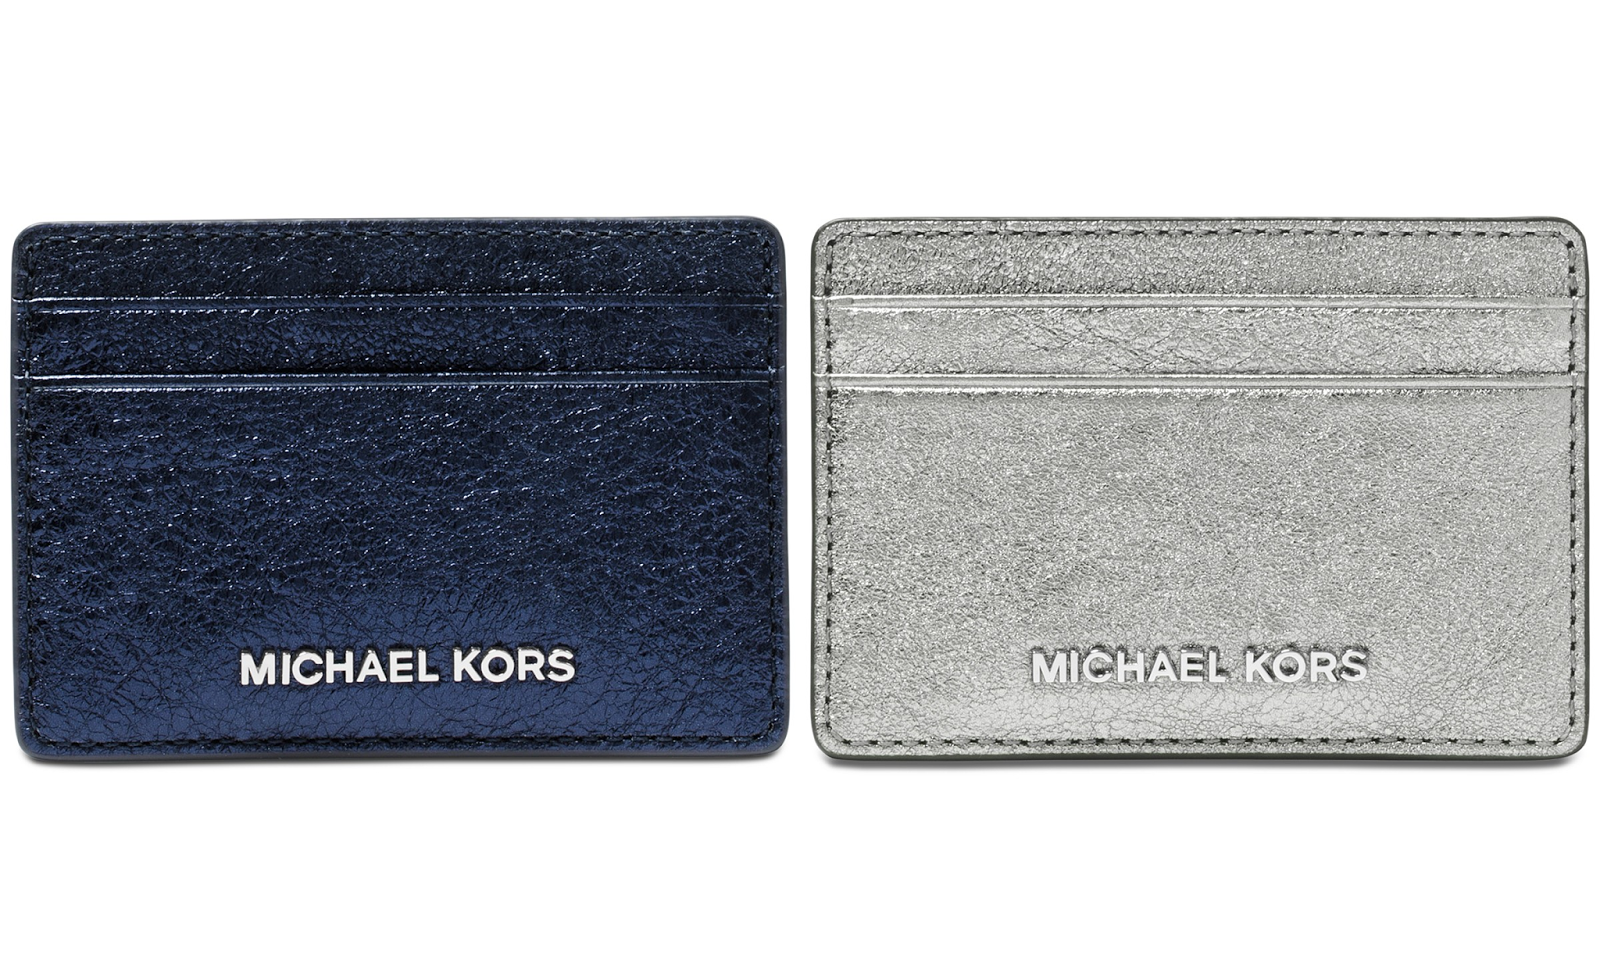 5823b819e95540 Macys offers these MICHAEL Michael Kors Money Pieces Card Holder for $62.93  (Reg. $158). Plus, get free ship. Plus, RetailMeNot offers $10 Cashback  when you ...